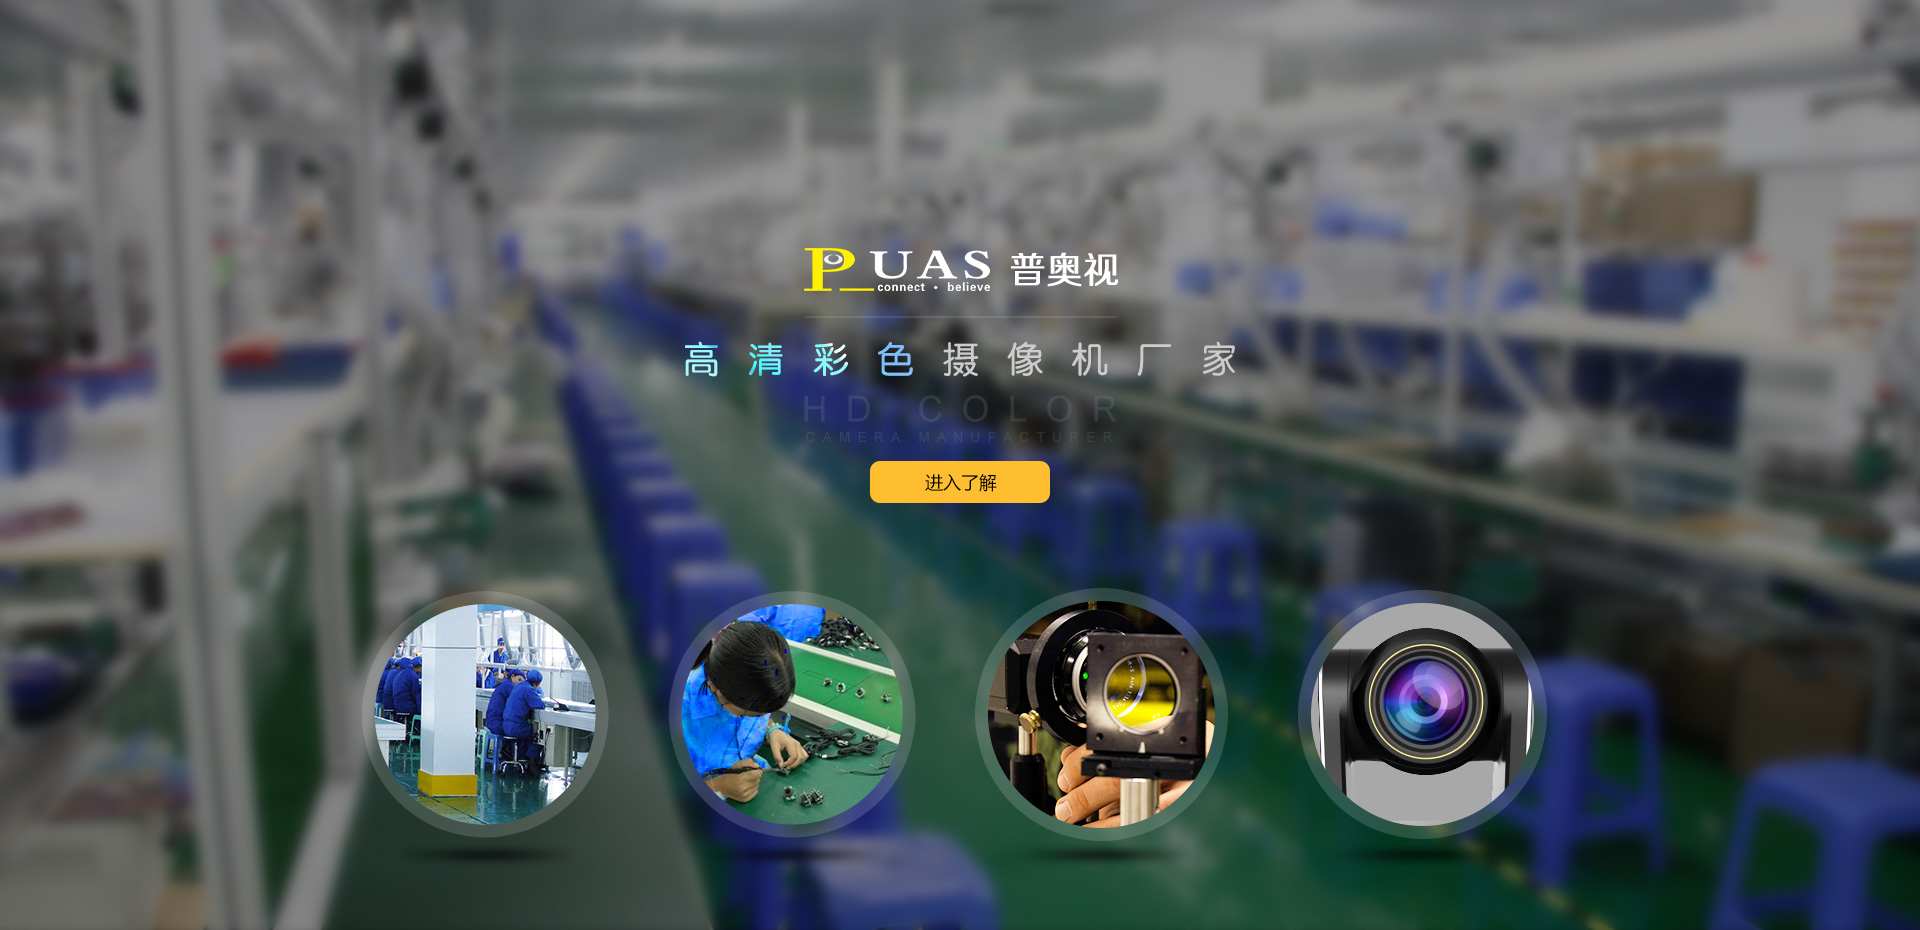 PUAS - professional video conference camera manufacturer